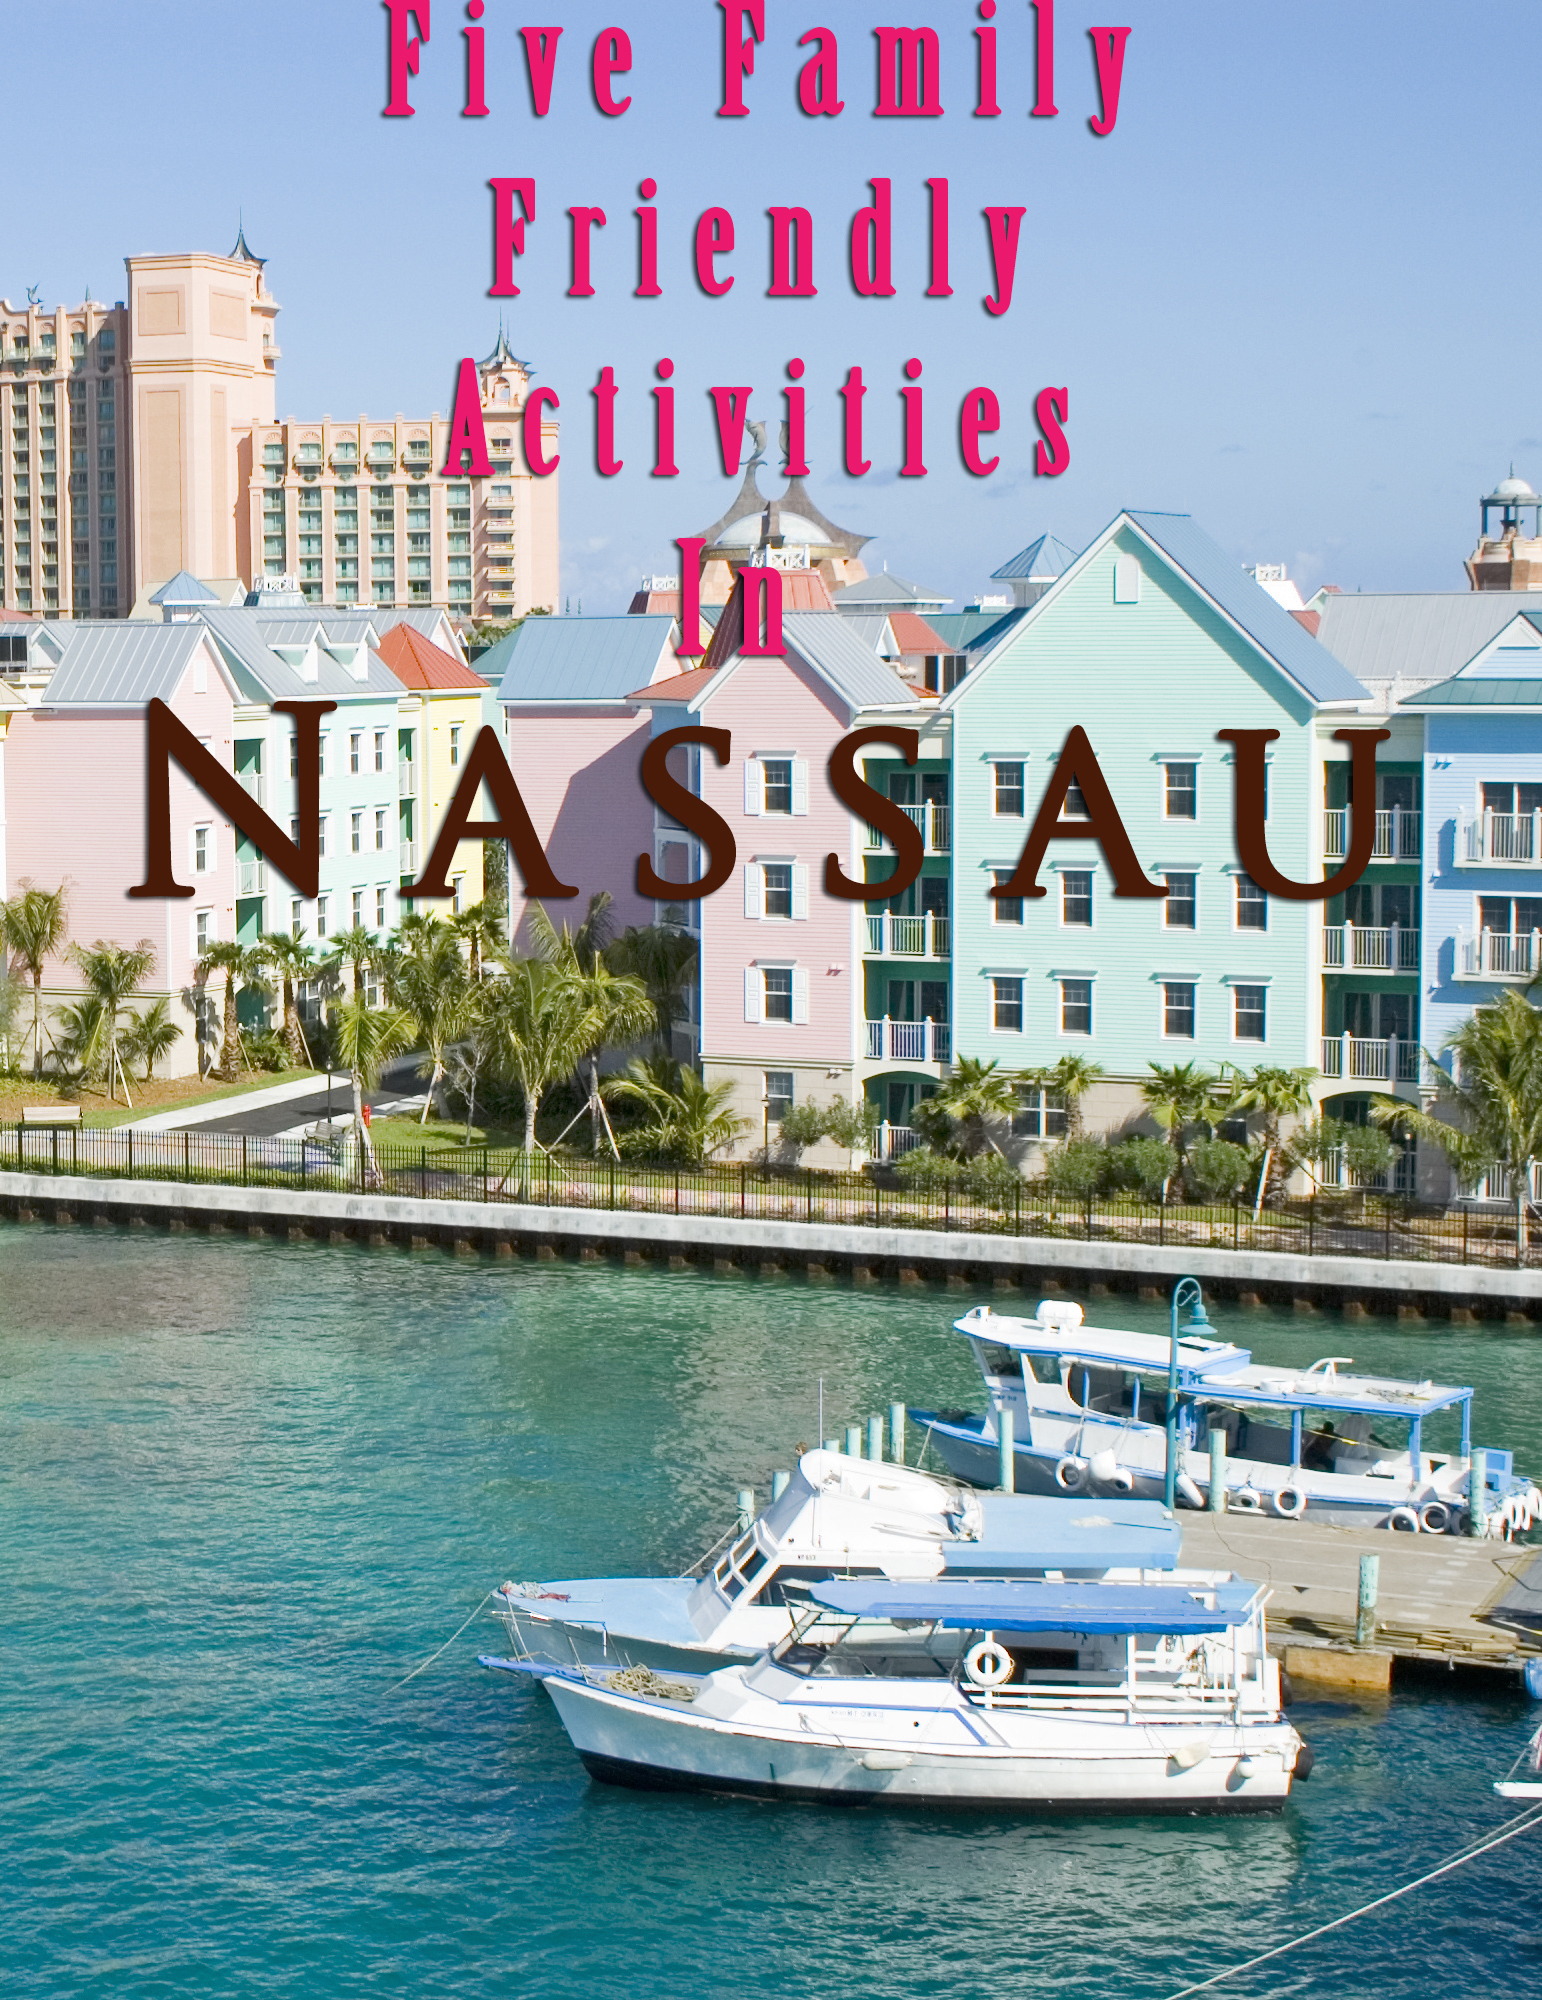 Five family friendly activities in Nassau